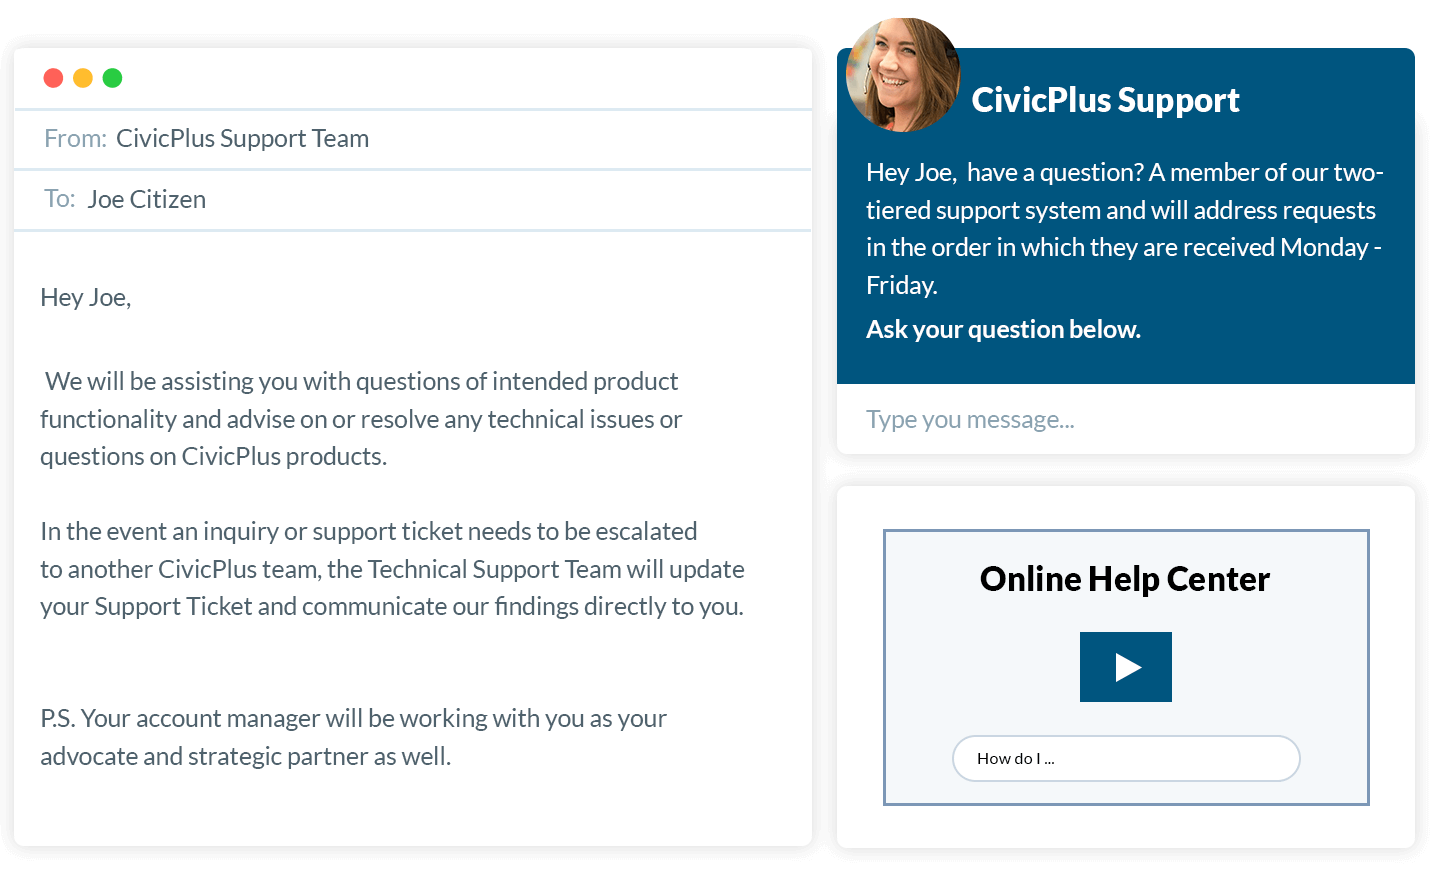 CivicPlus Support Team